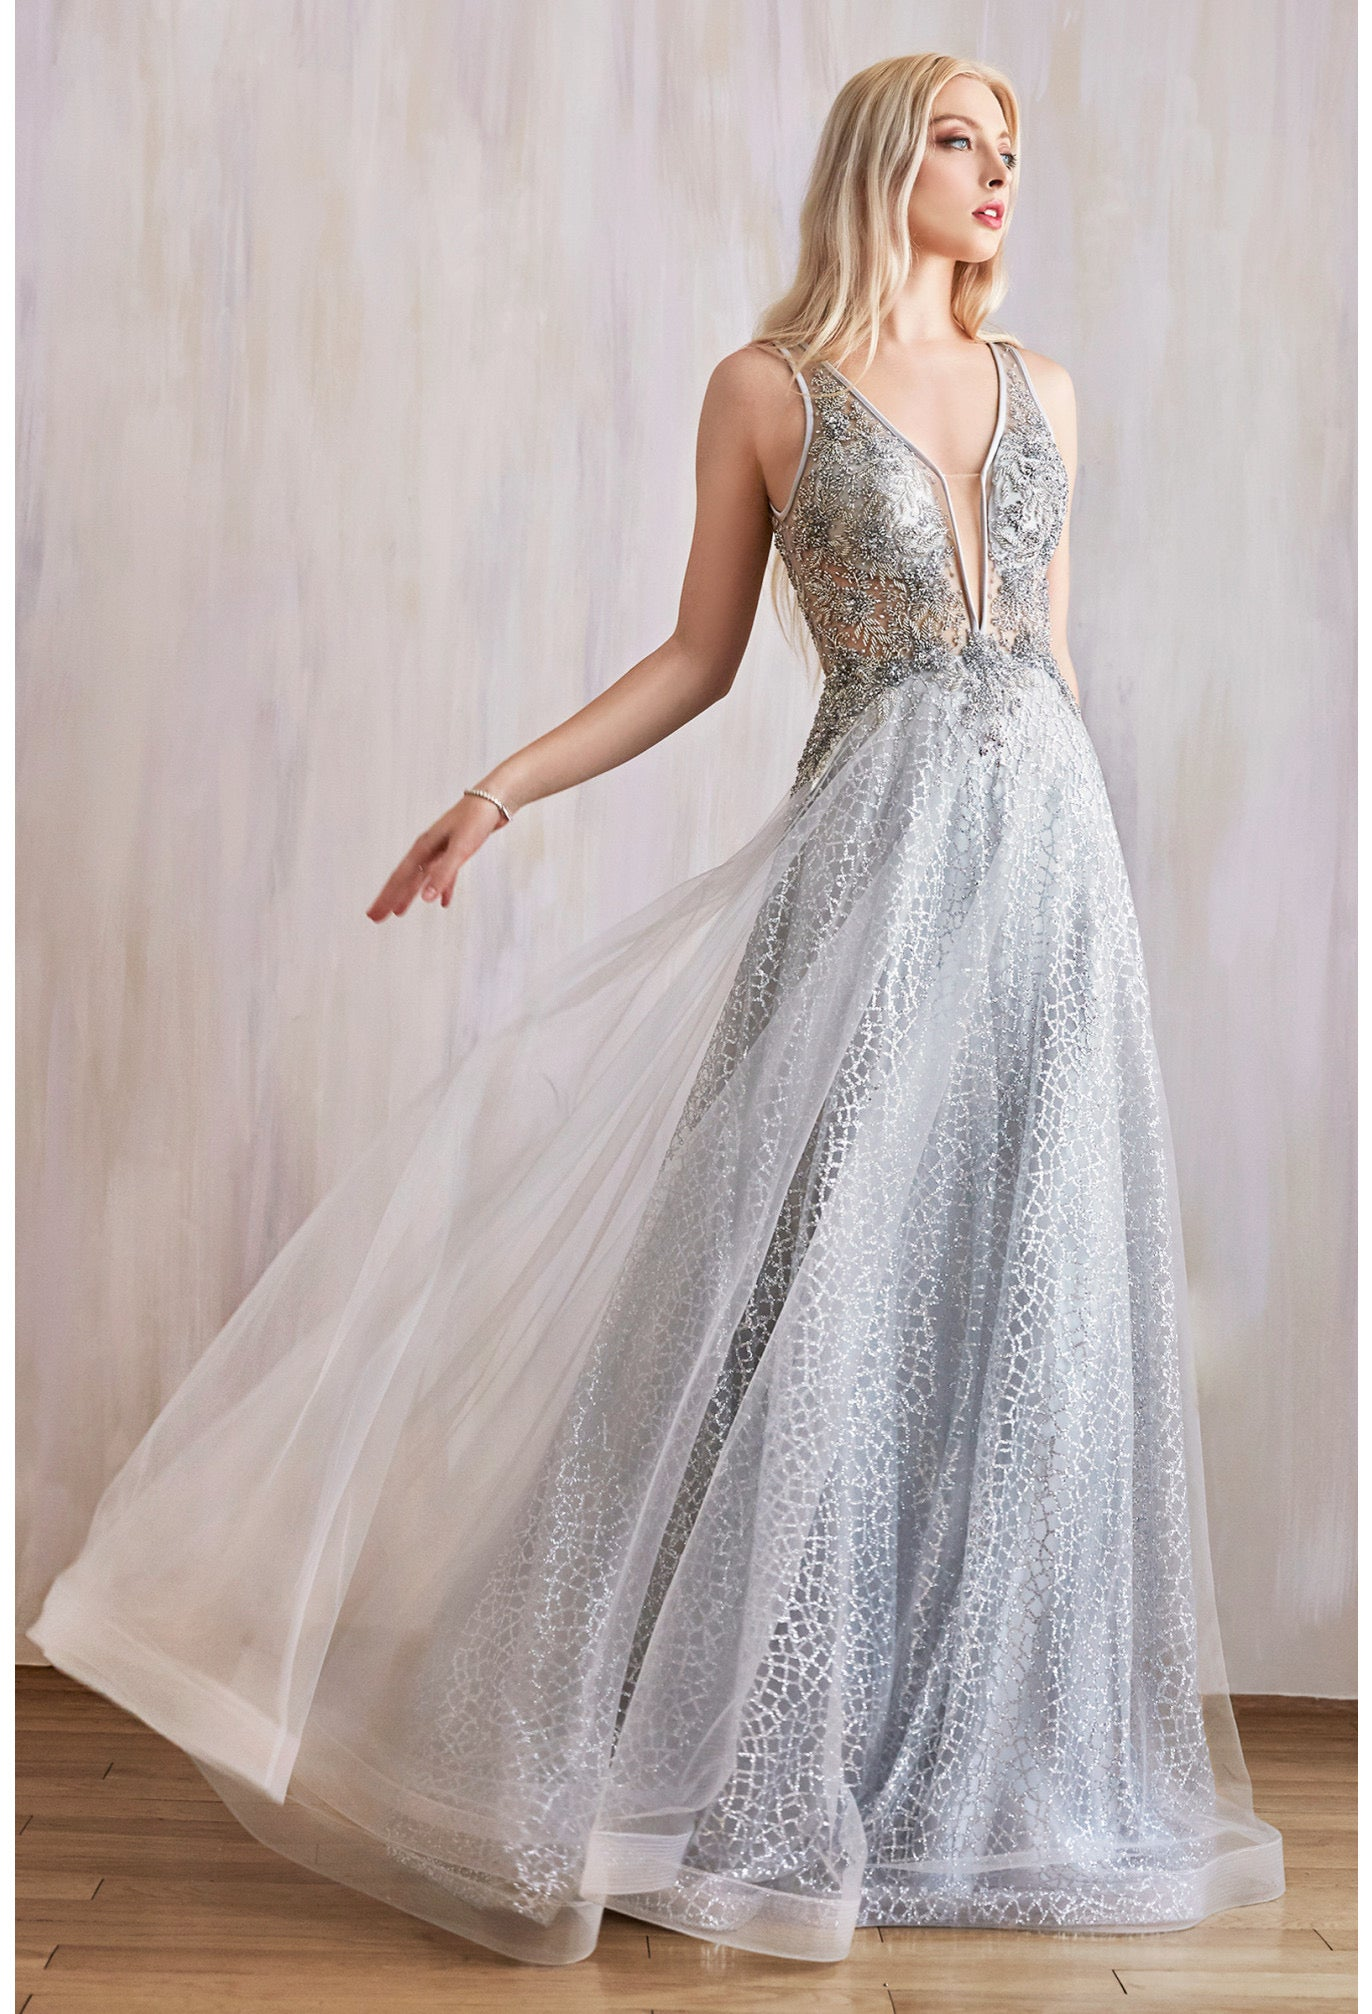 AL Midnight Dream Silver Gown